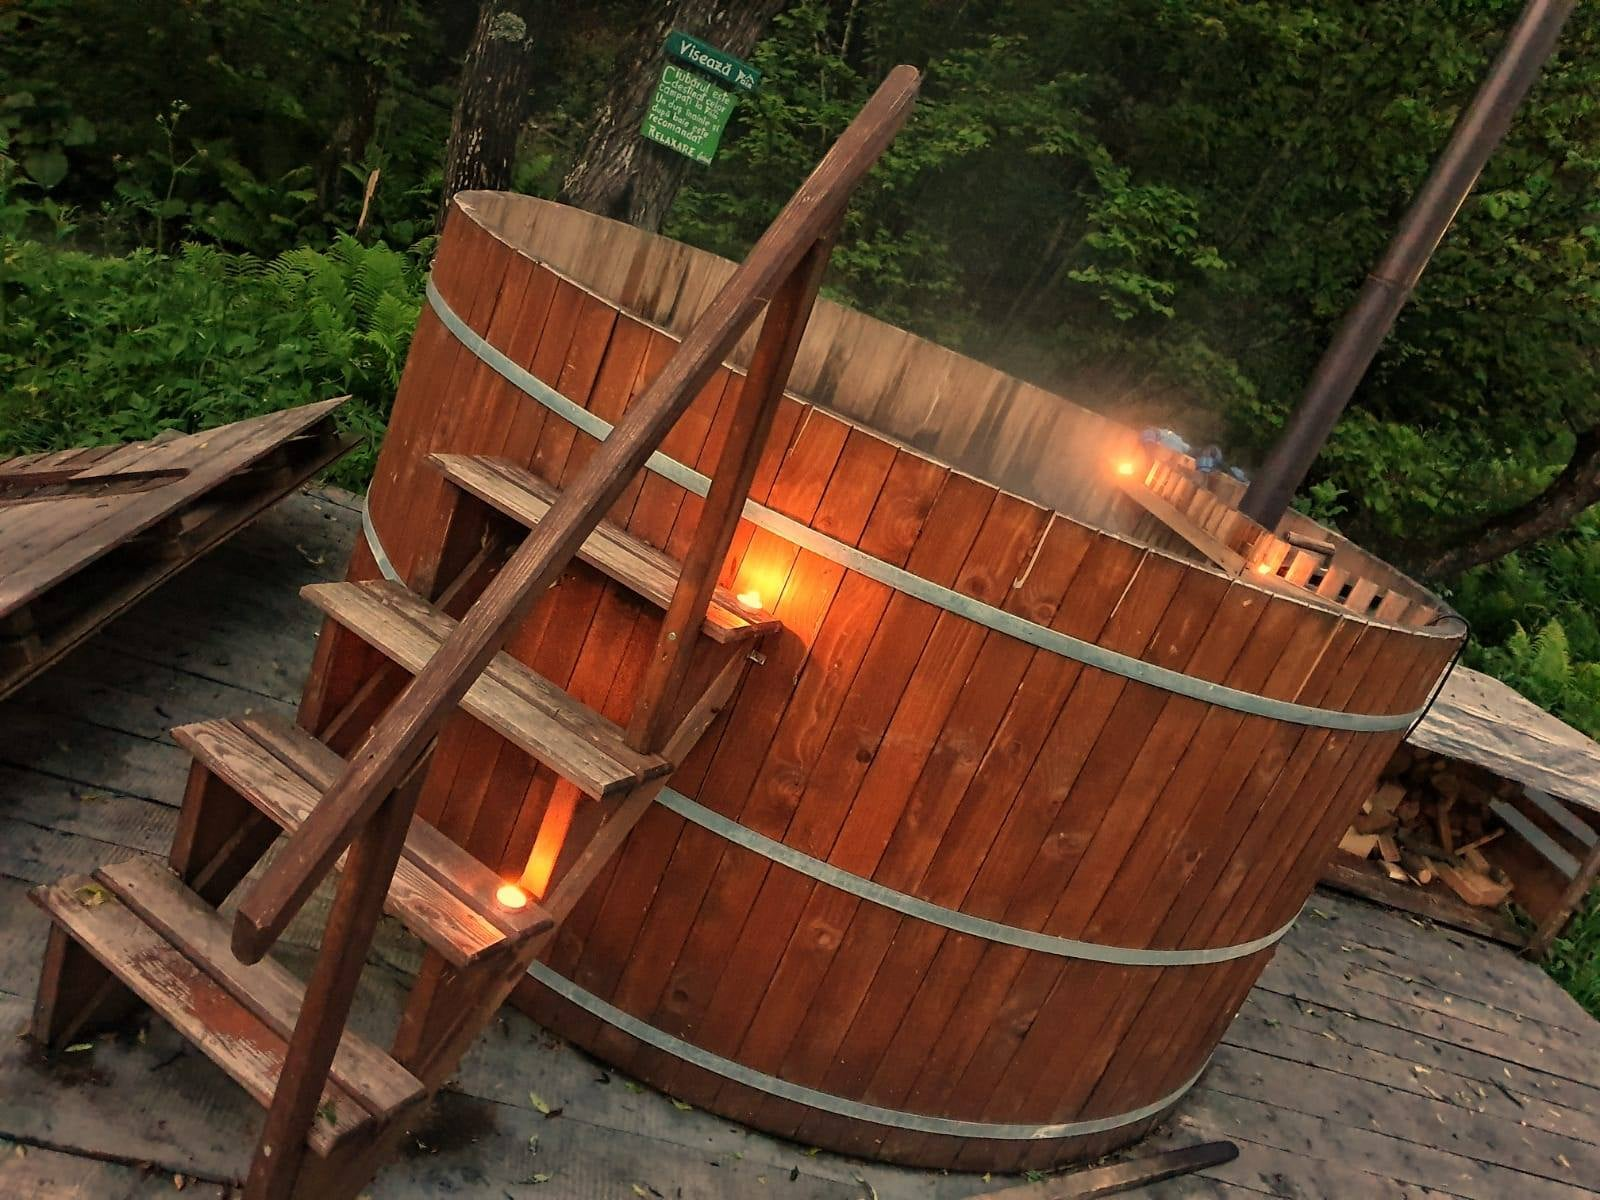 Wooden jacuzzi with hot water